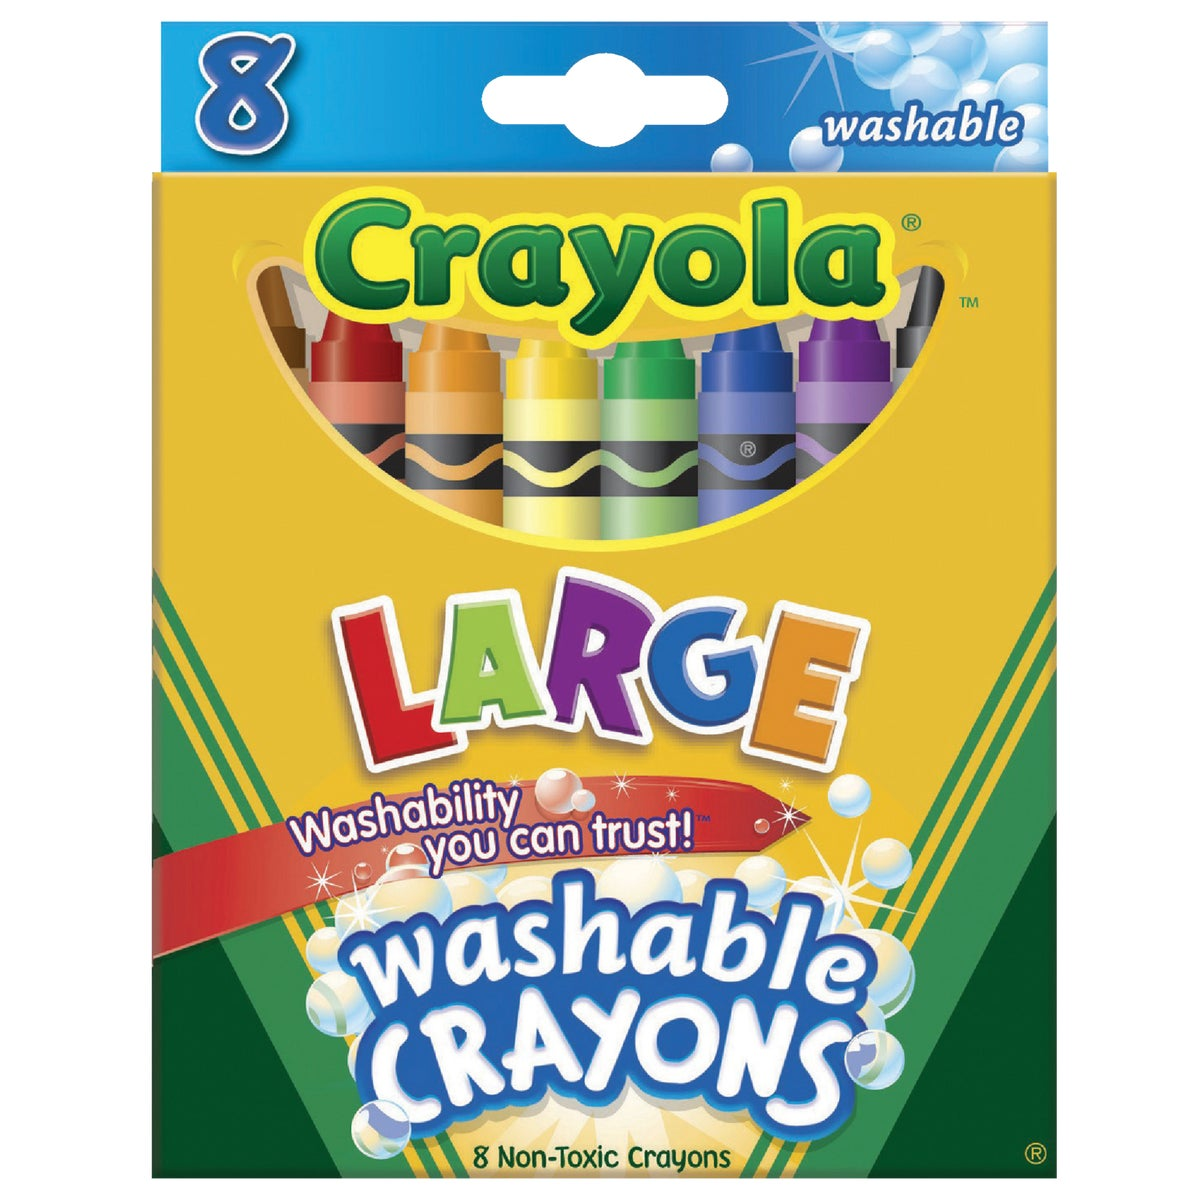 8CT WASHABLE CRAYONS - 52-3280 by Crayola L L C